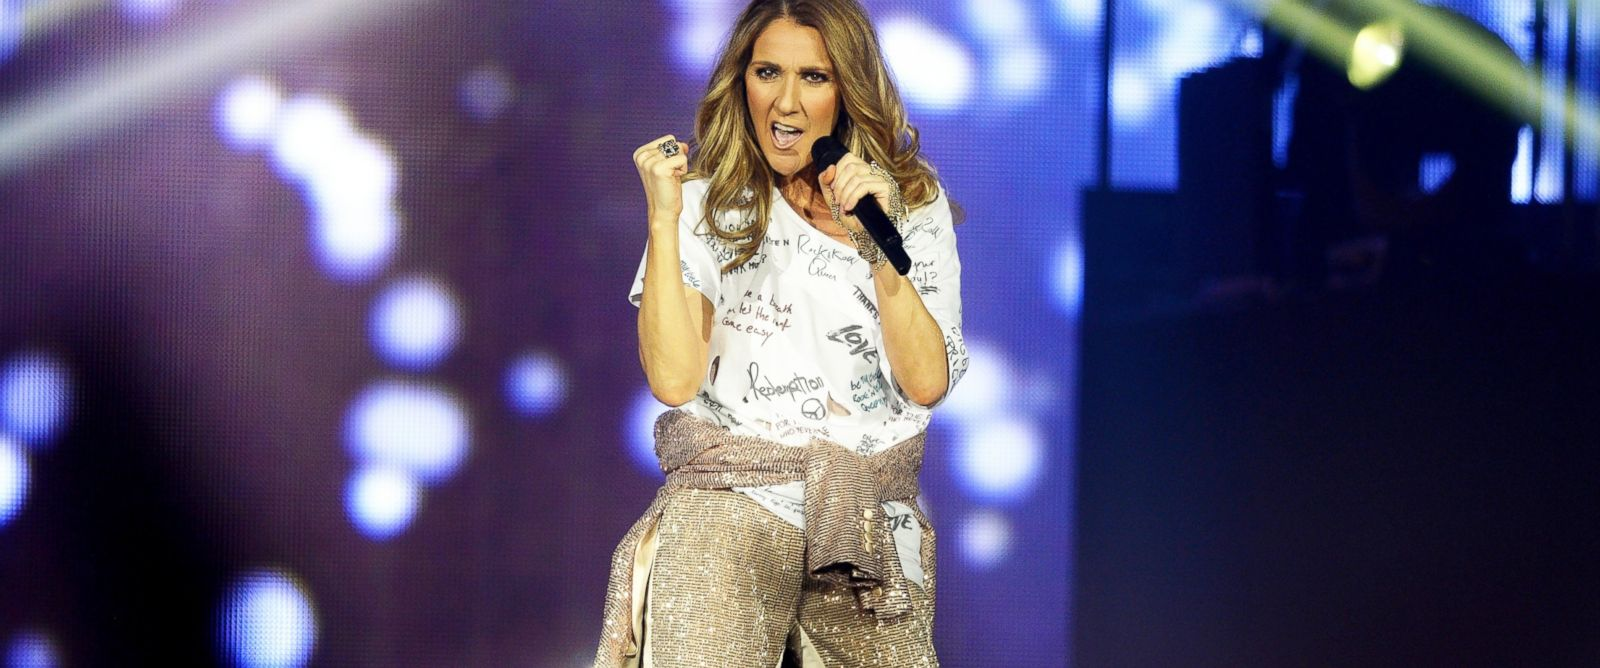 """PHOTO: Celine Dion performs during the opening night of her """"Celine Dion Live 2017"""" tour, June 15, 2017, in Copenhagen."""